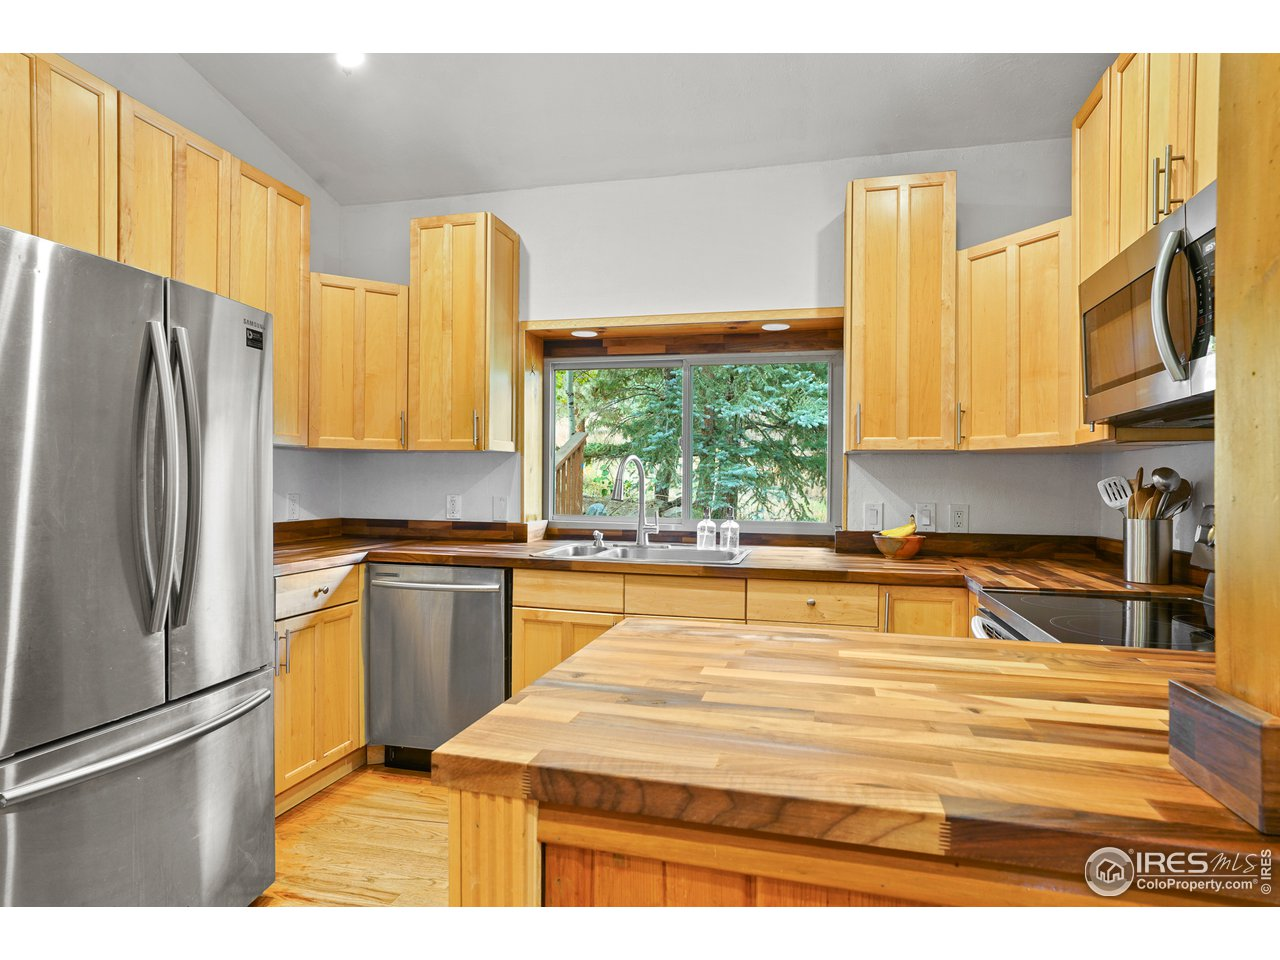 Maple Cabinets, Butcher Block Counter Tops